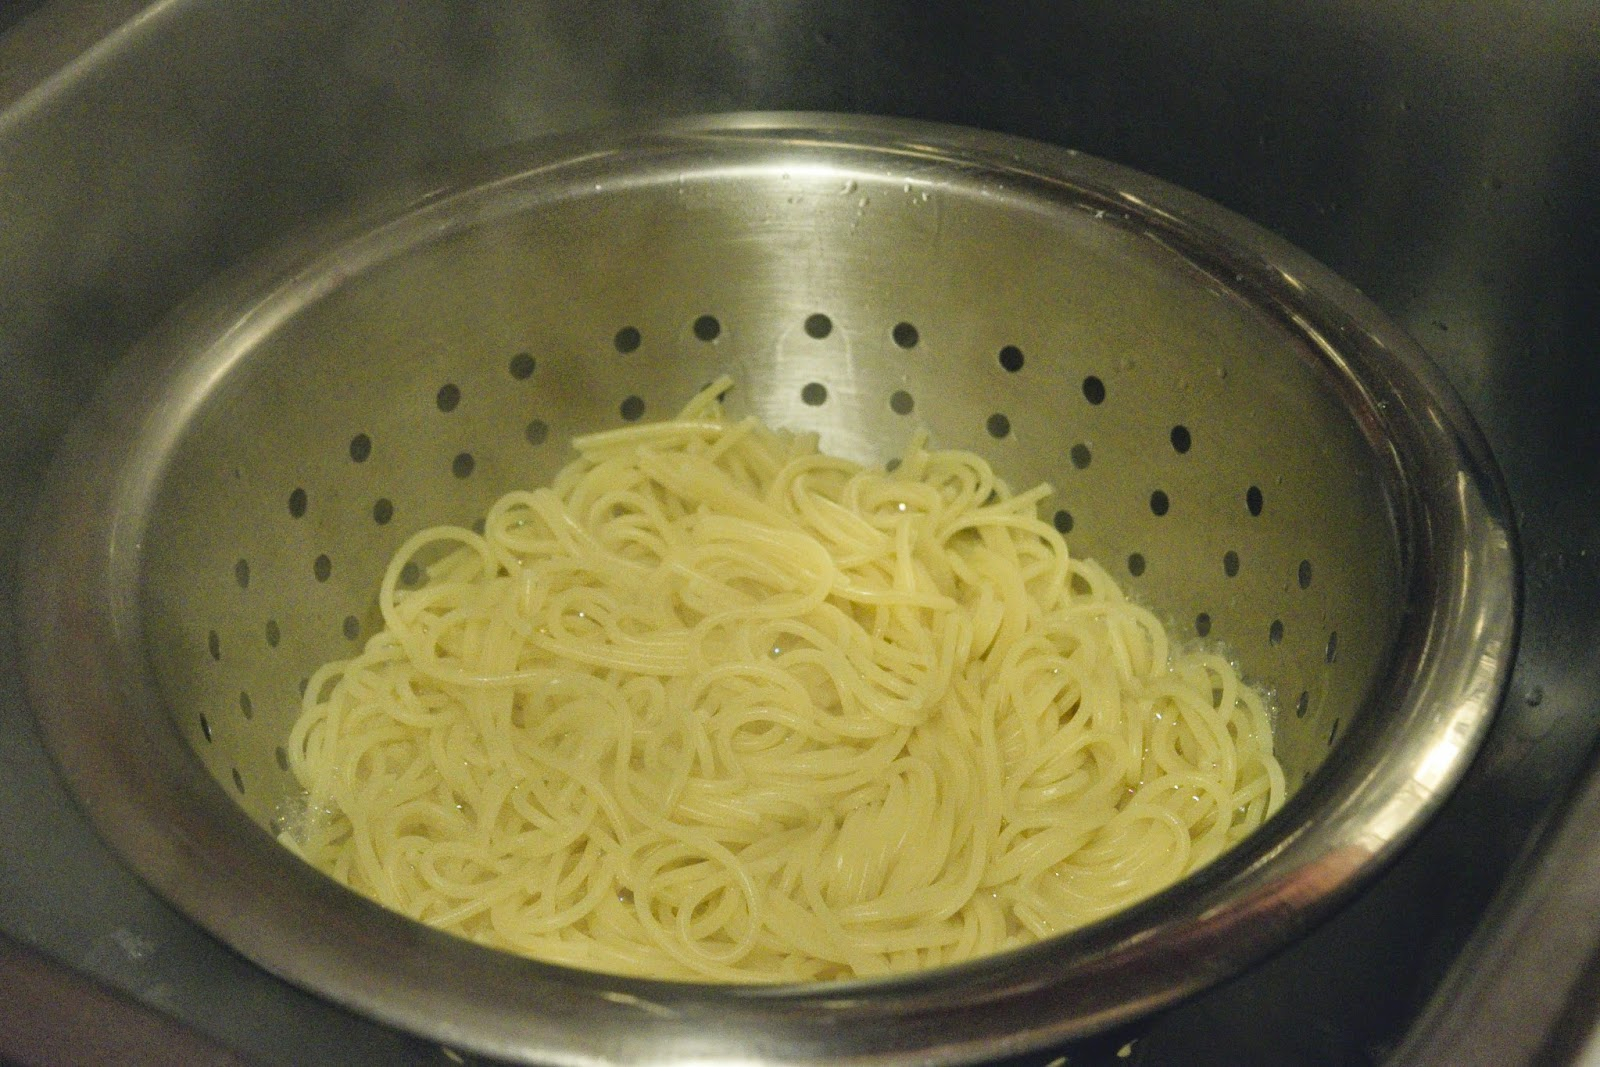 The cooked pasta in the colander.